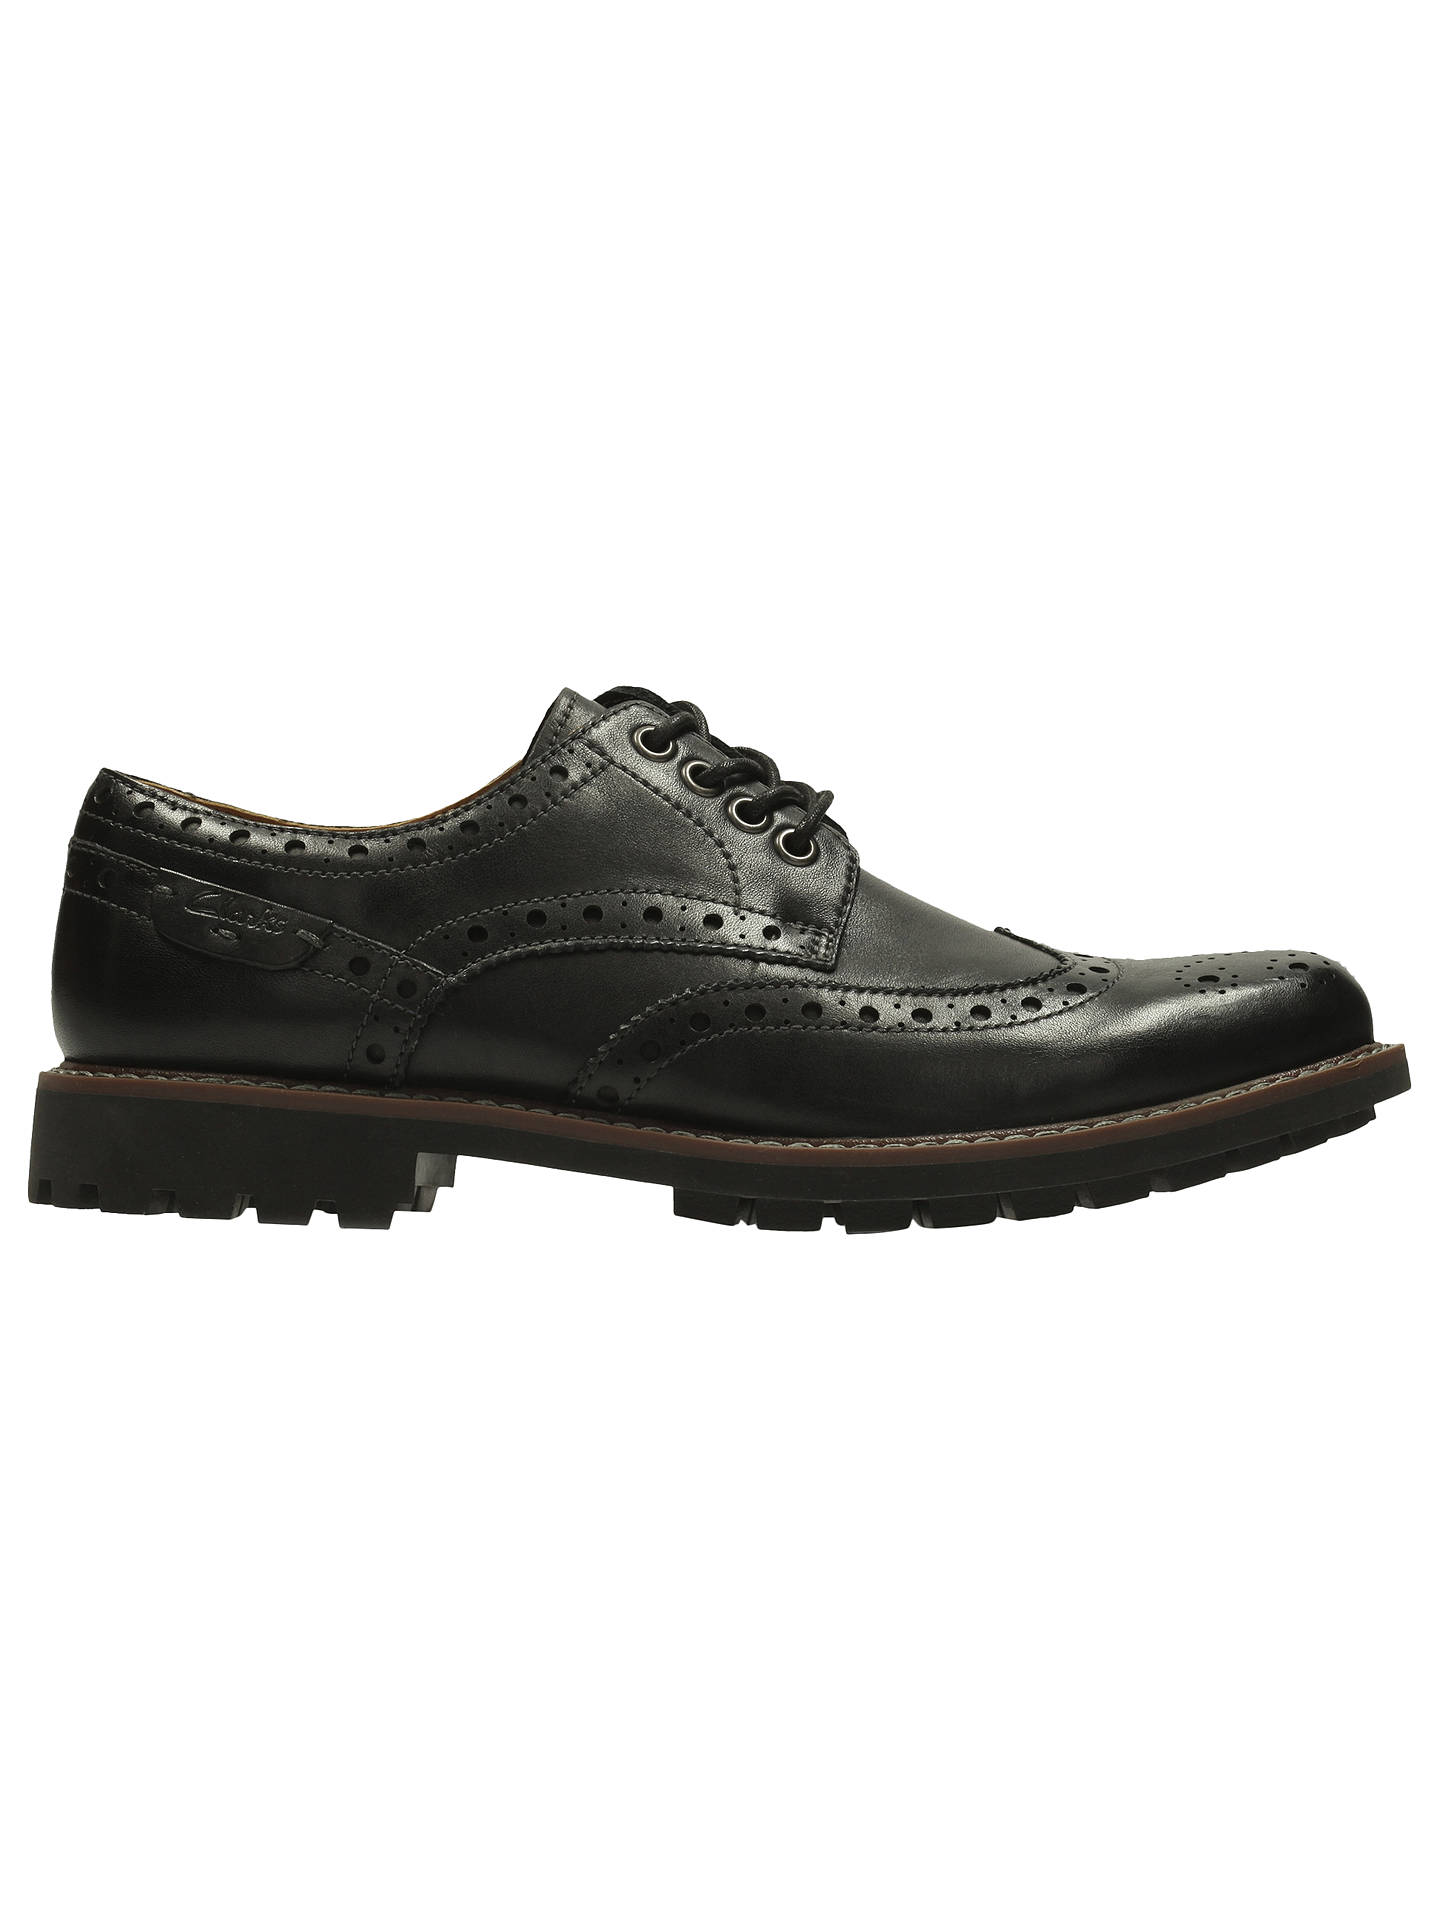 75cebde7d9134 BuyClarks Montacute Wing Leather Brogue Shoes, Black, 7 Online at  johnlewis.com ...